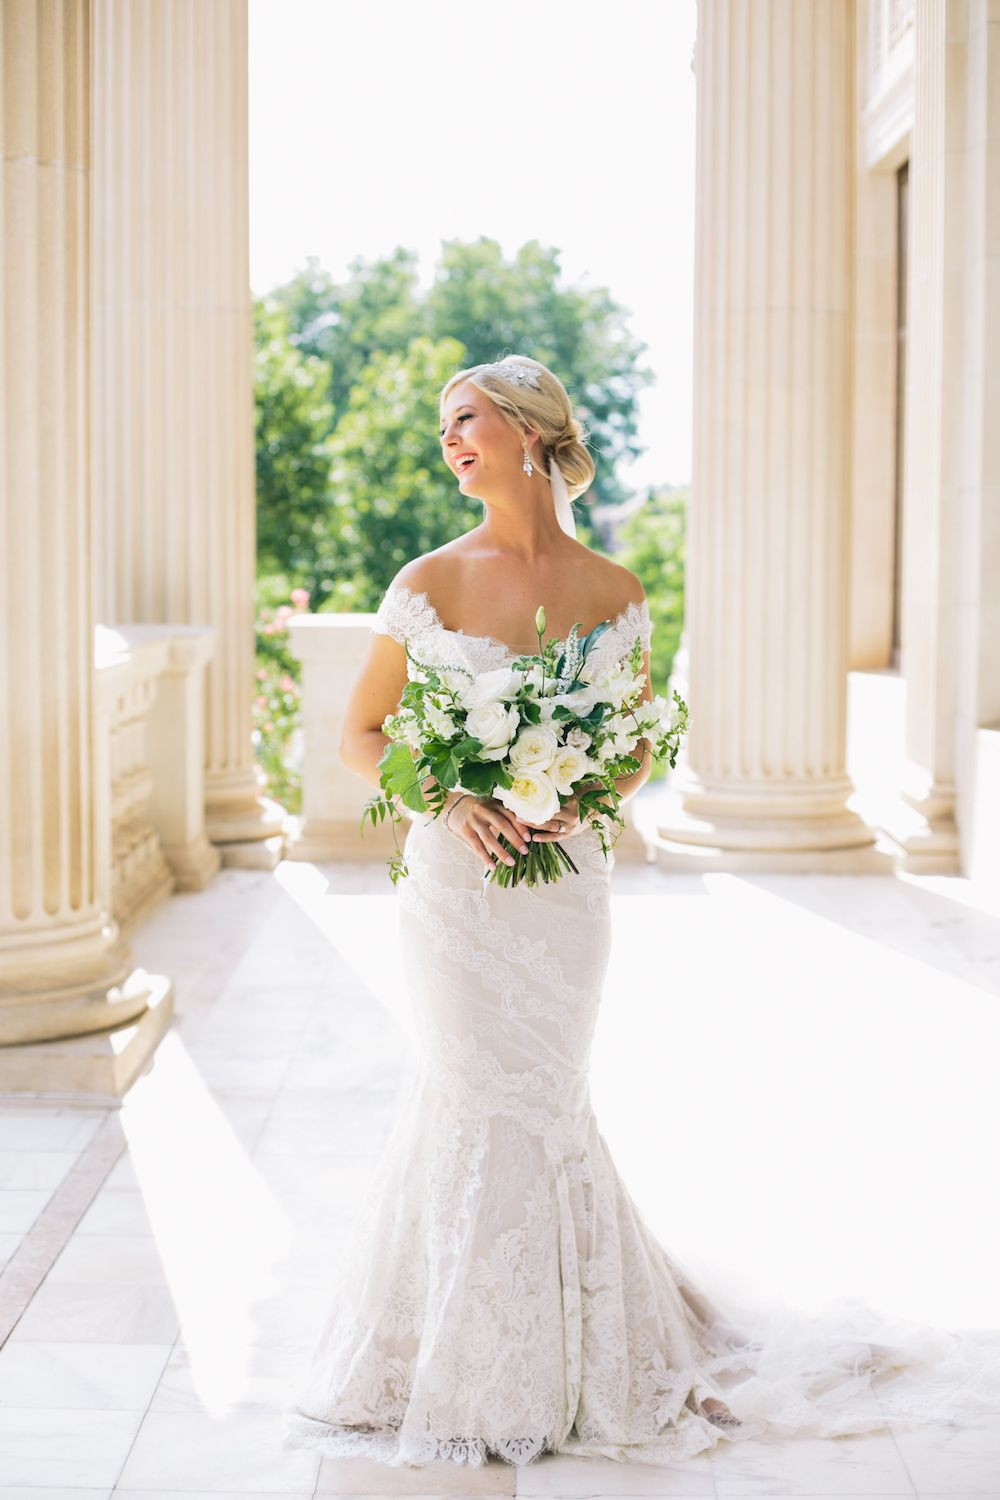 Aaron Snow Photography Oklahoma Wedding Photographer Bride Bridal Portraits Hall of Fame Boone Pickens Abby Lightfoot